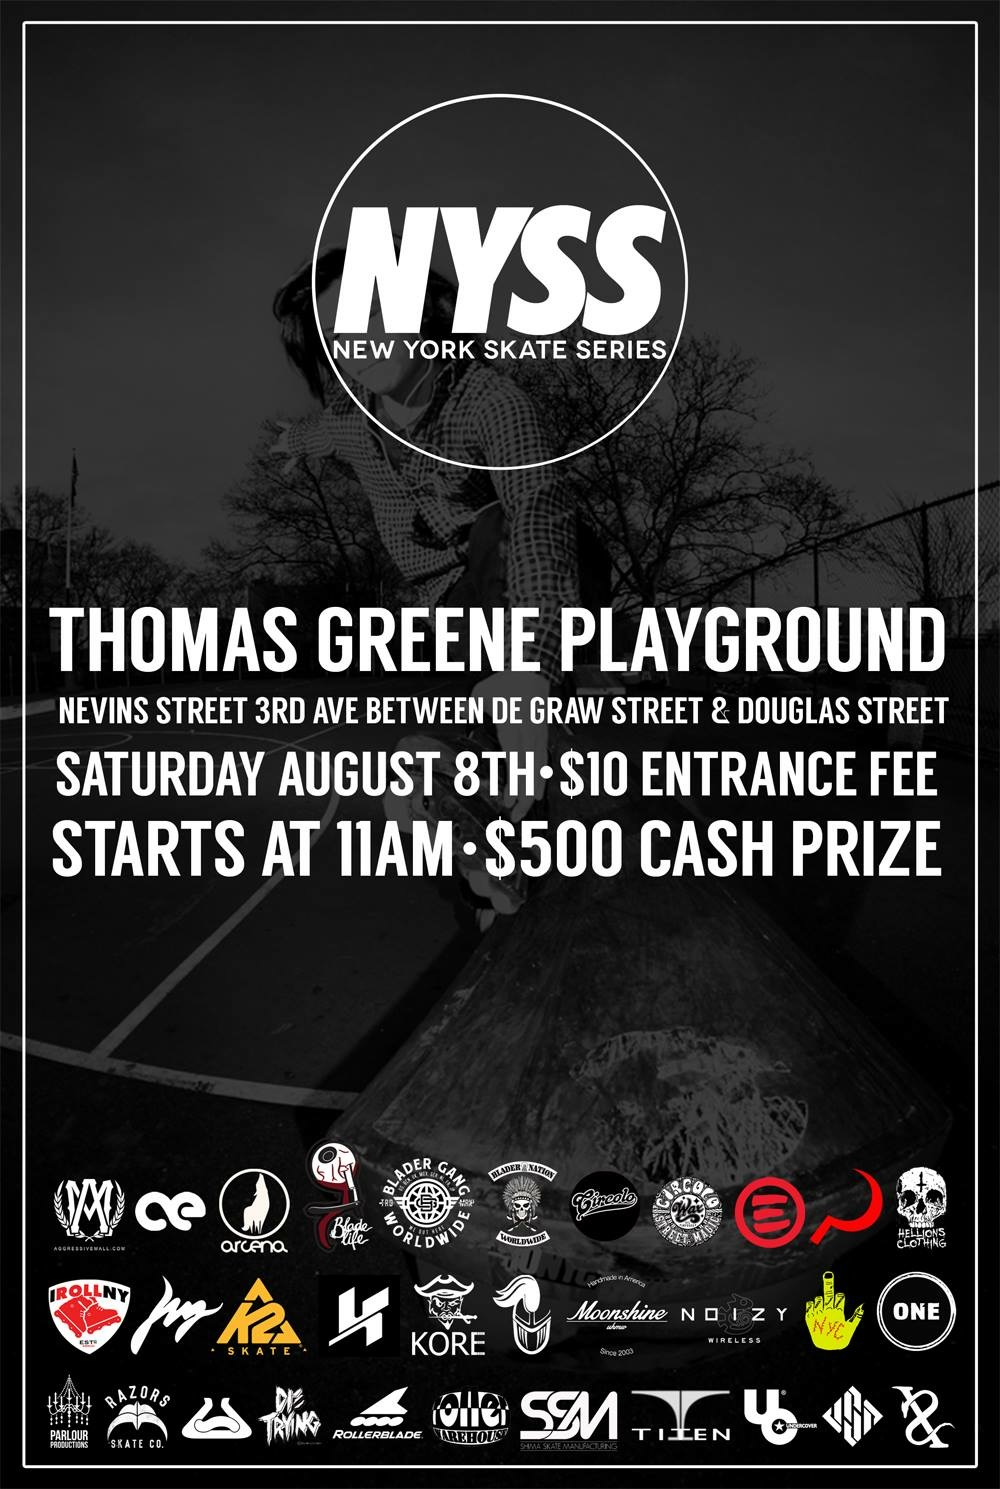 Thomas Greene Playground